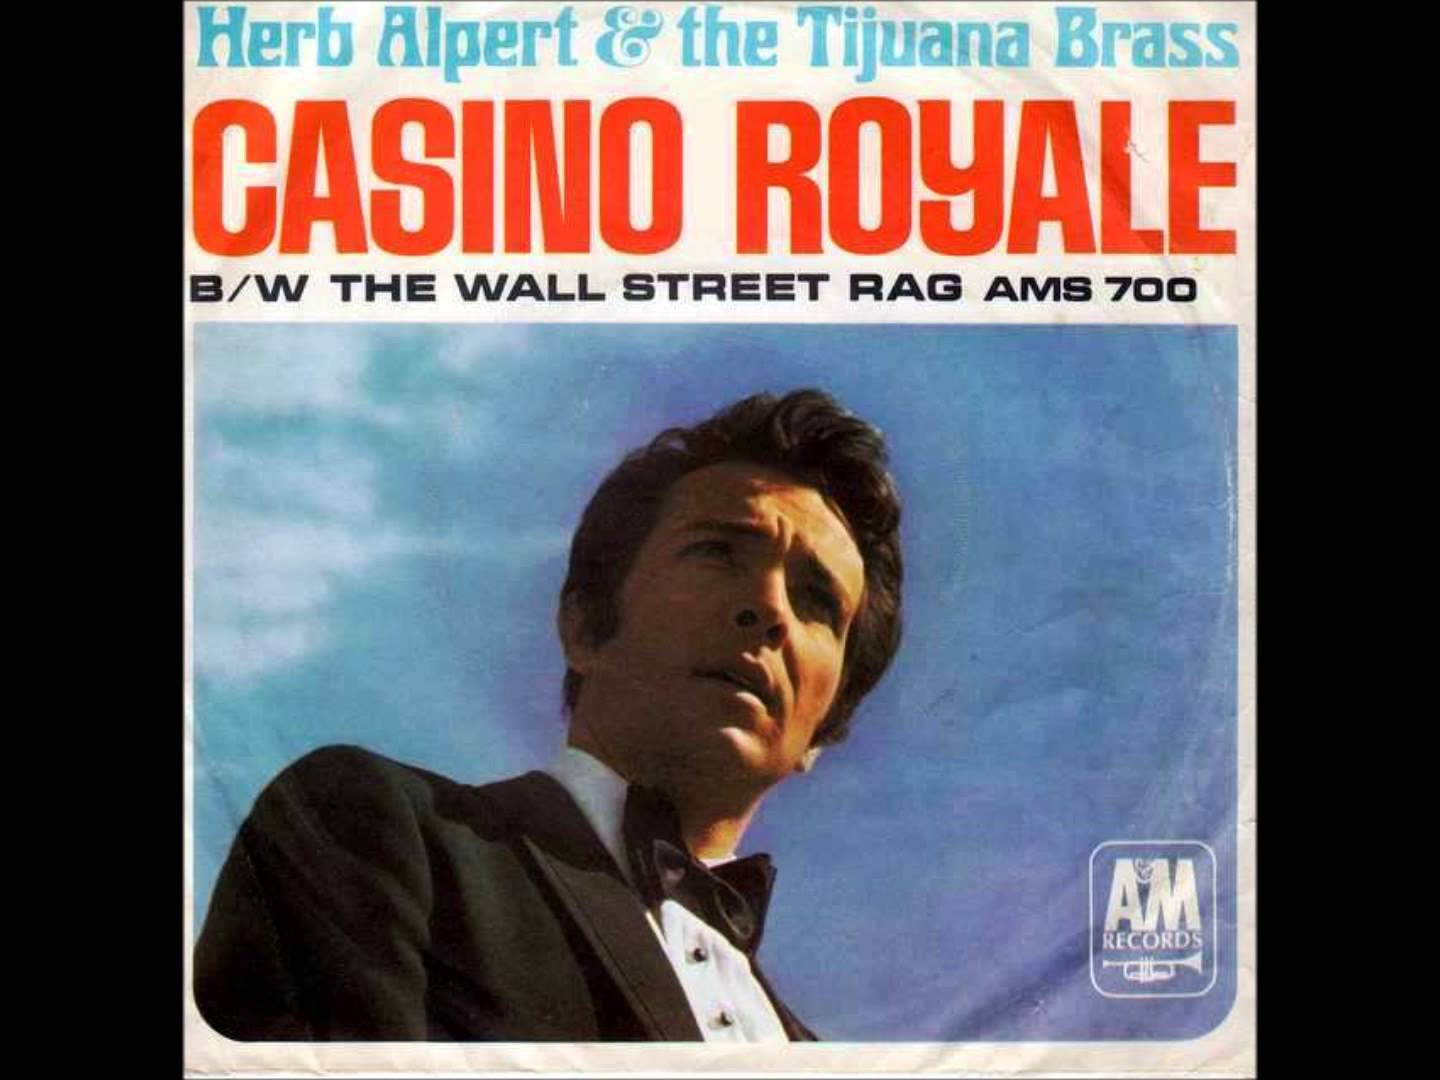 Herb Alpert & The Tijuana Brass – Casino royale